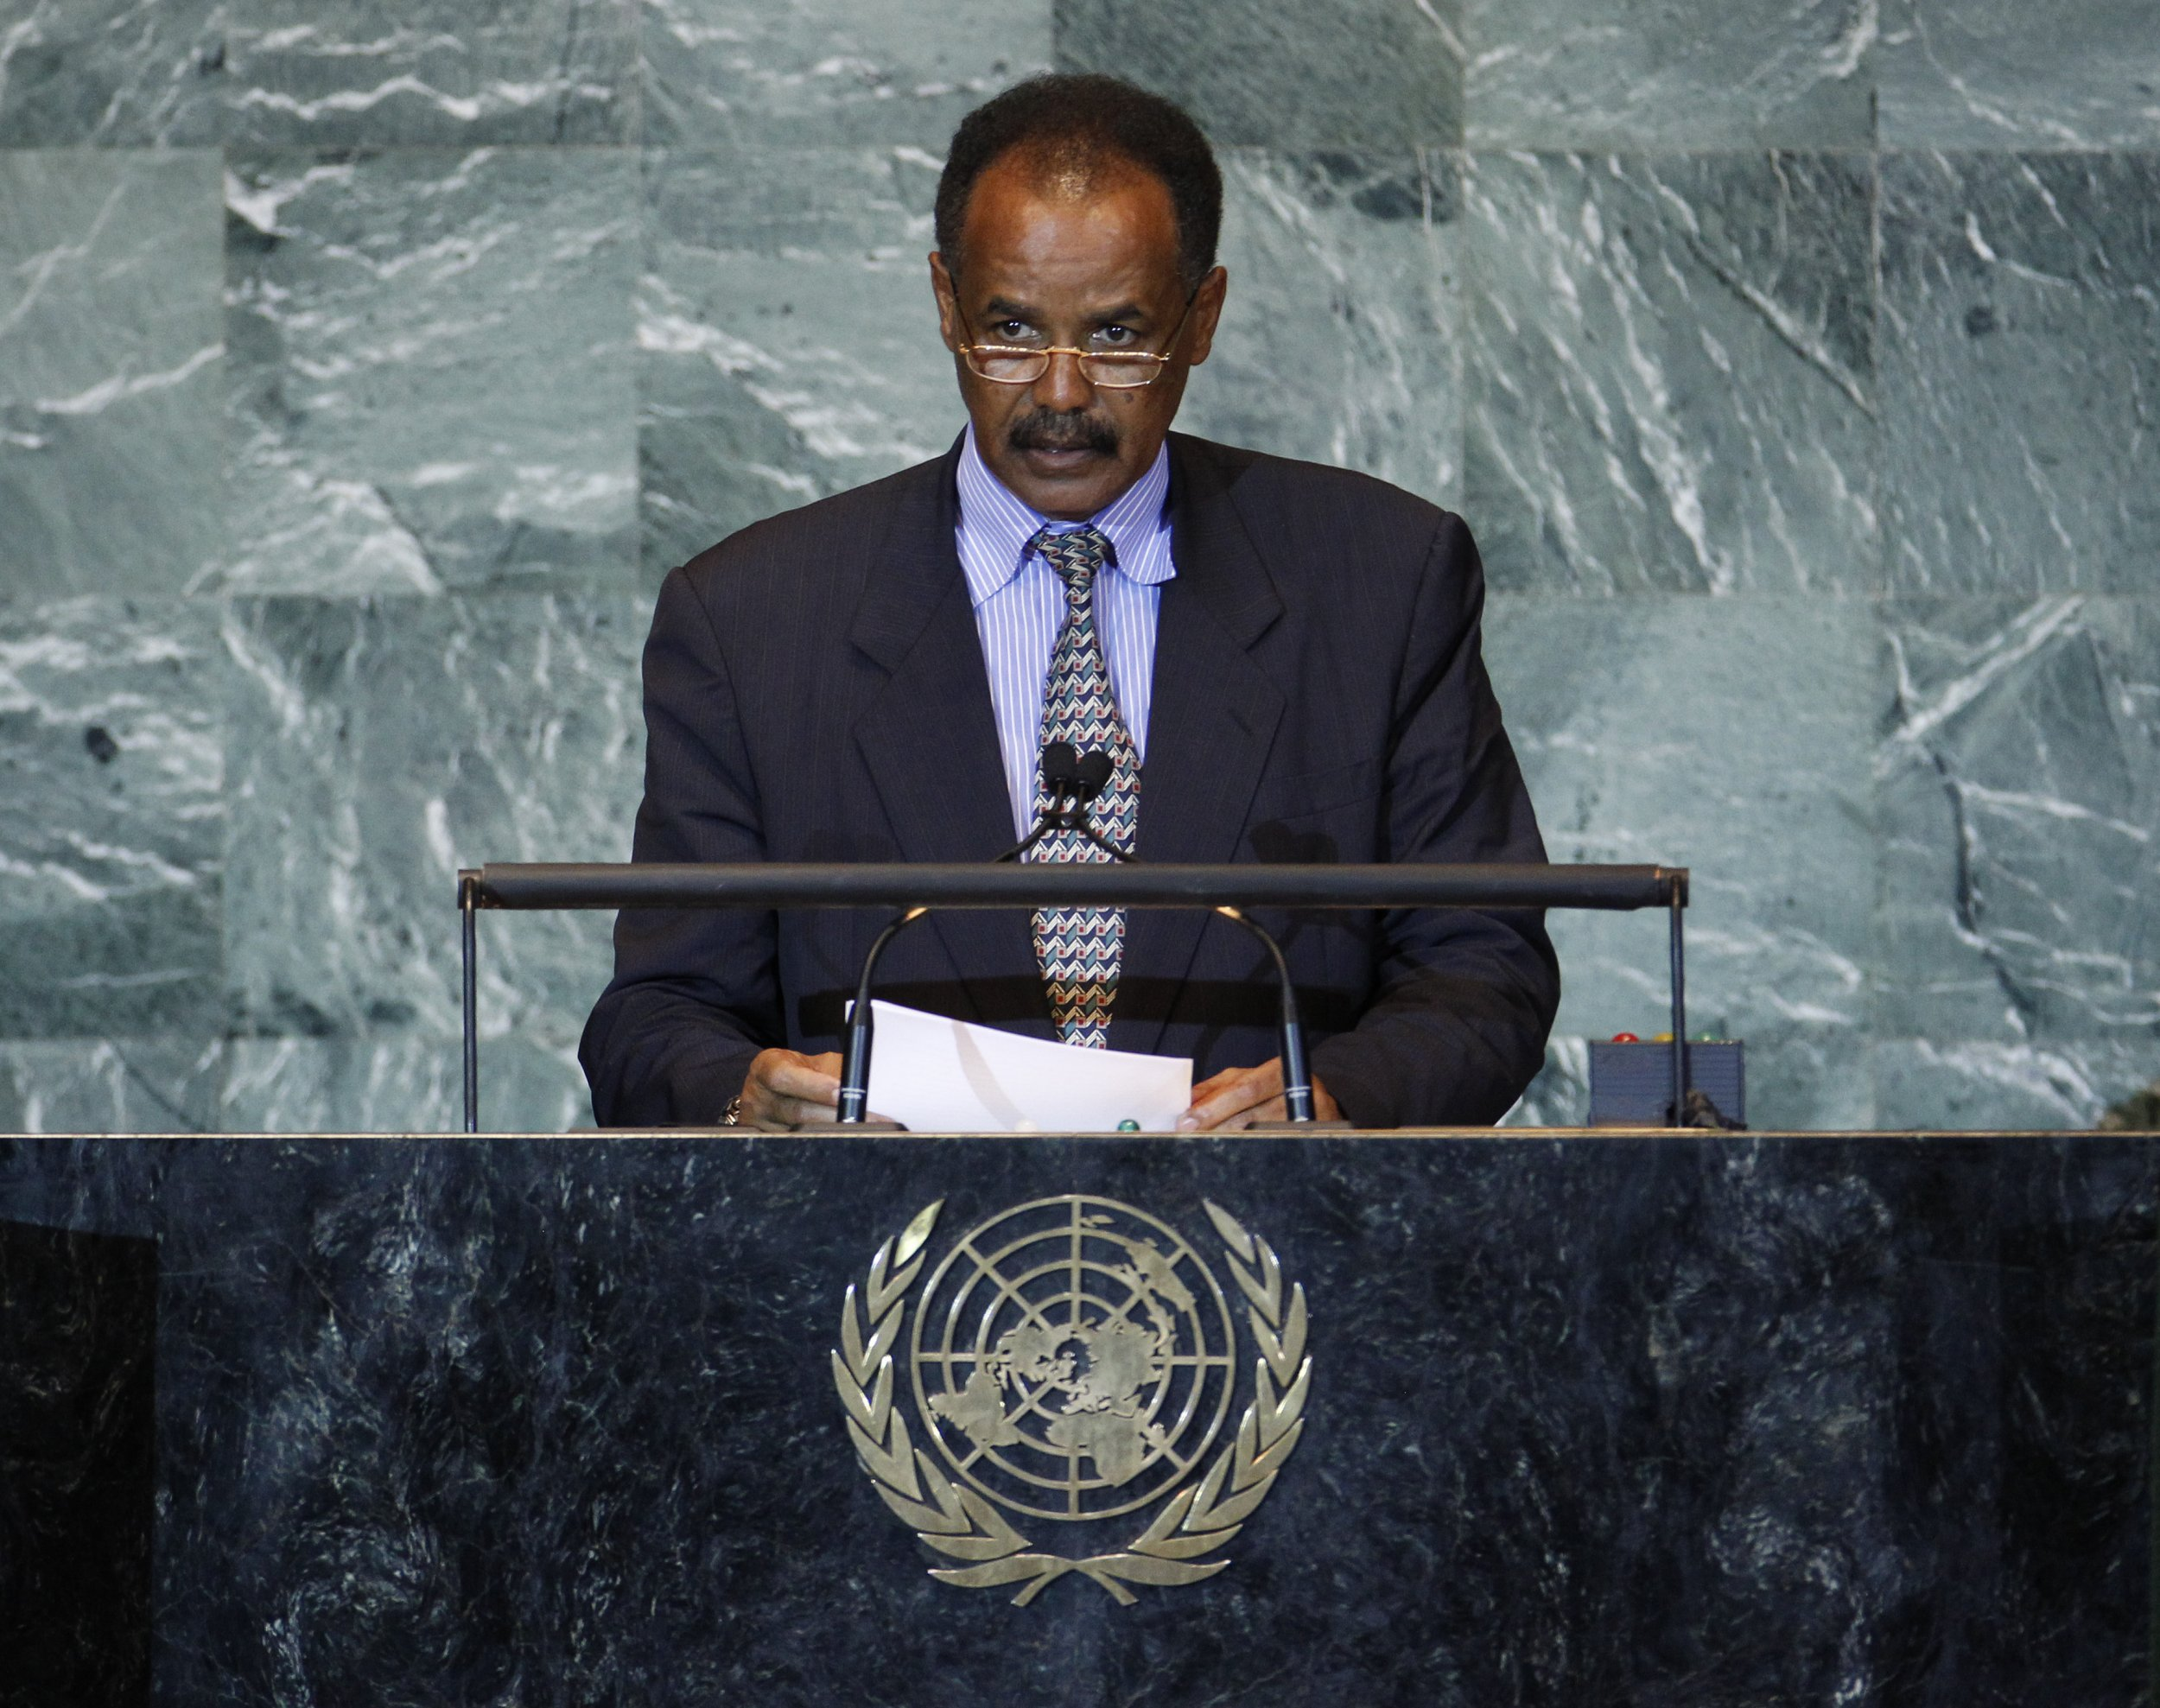 You're responsible: Eritrea, Africa's North Korea, blames U.S. for conflict with Ethiopia